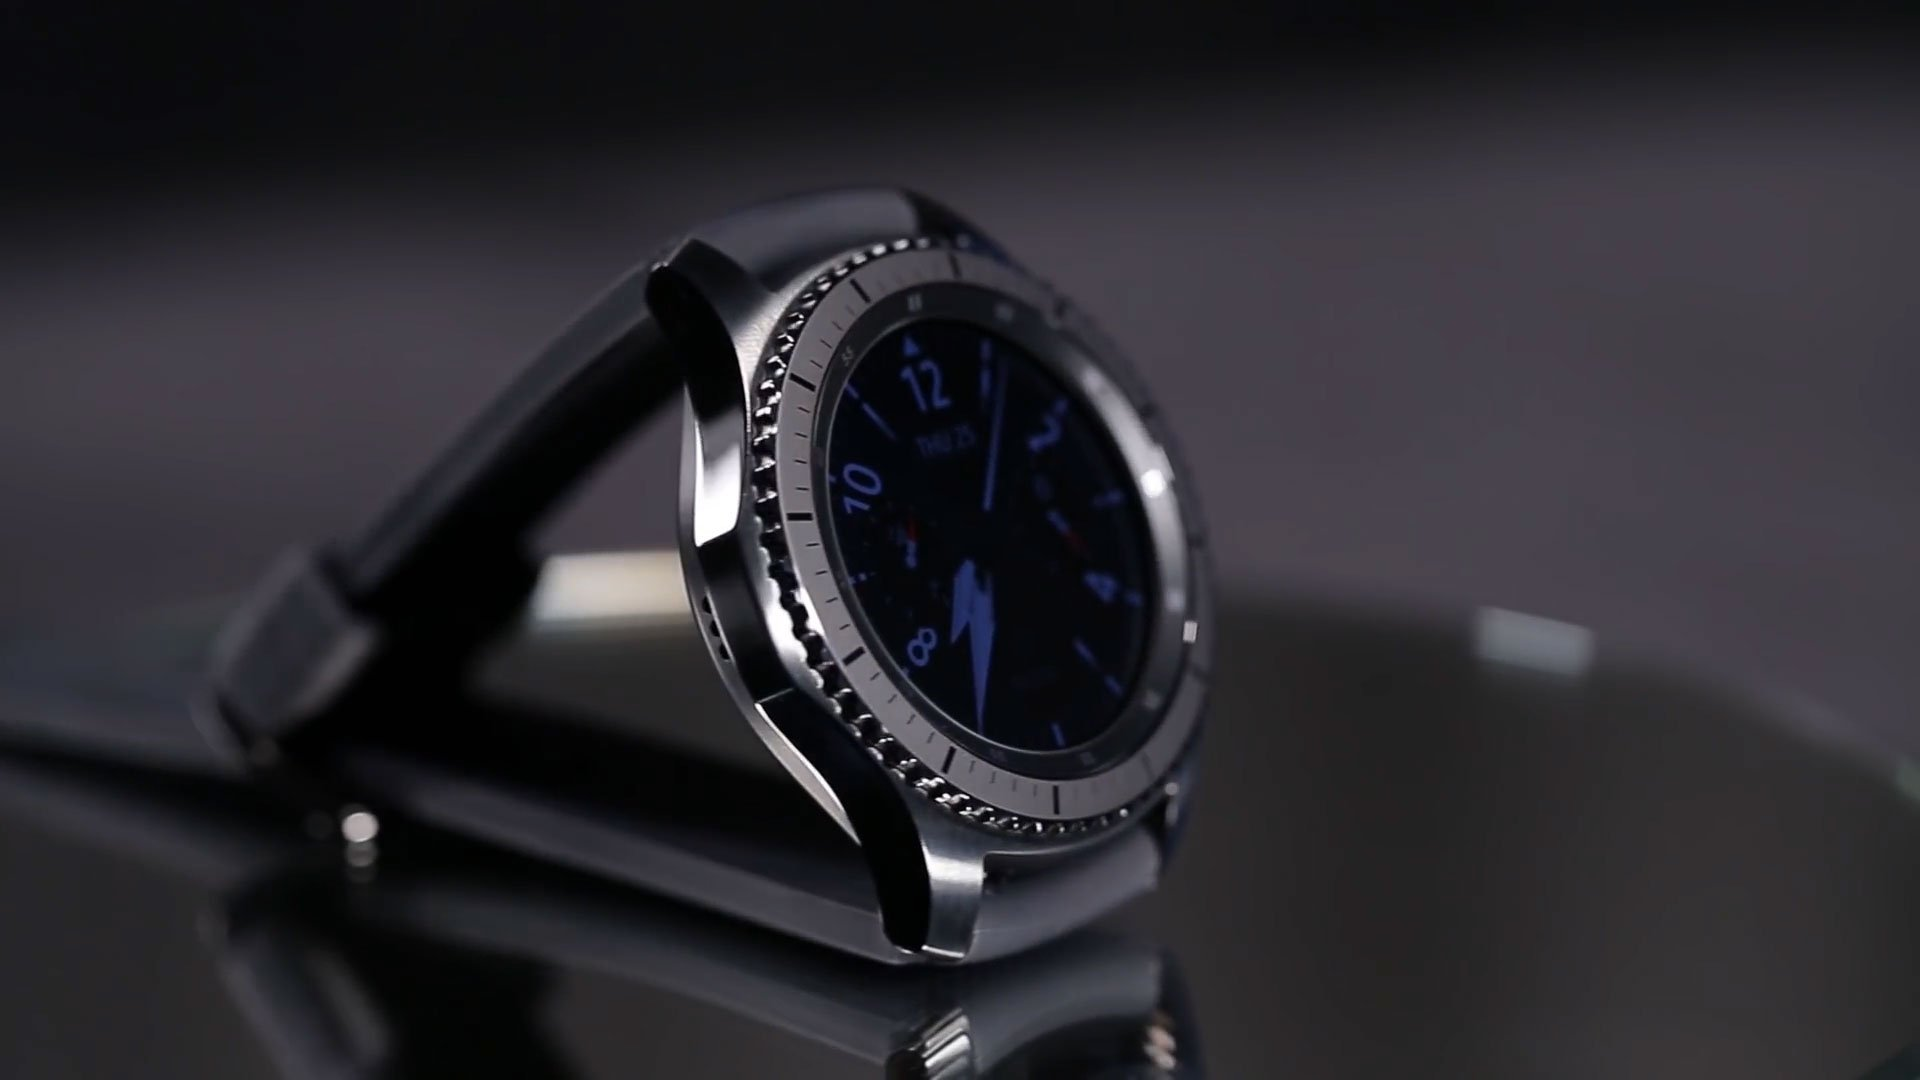 Comparativa Watch Samsung S3 Vs Sequent Gear wP80nkXO